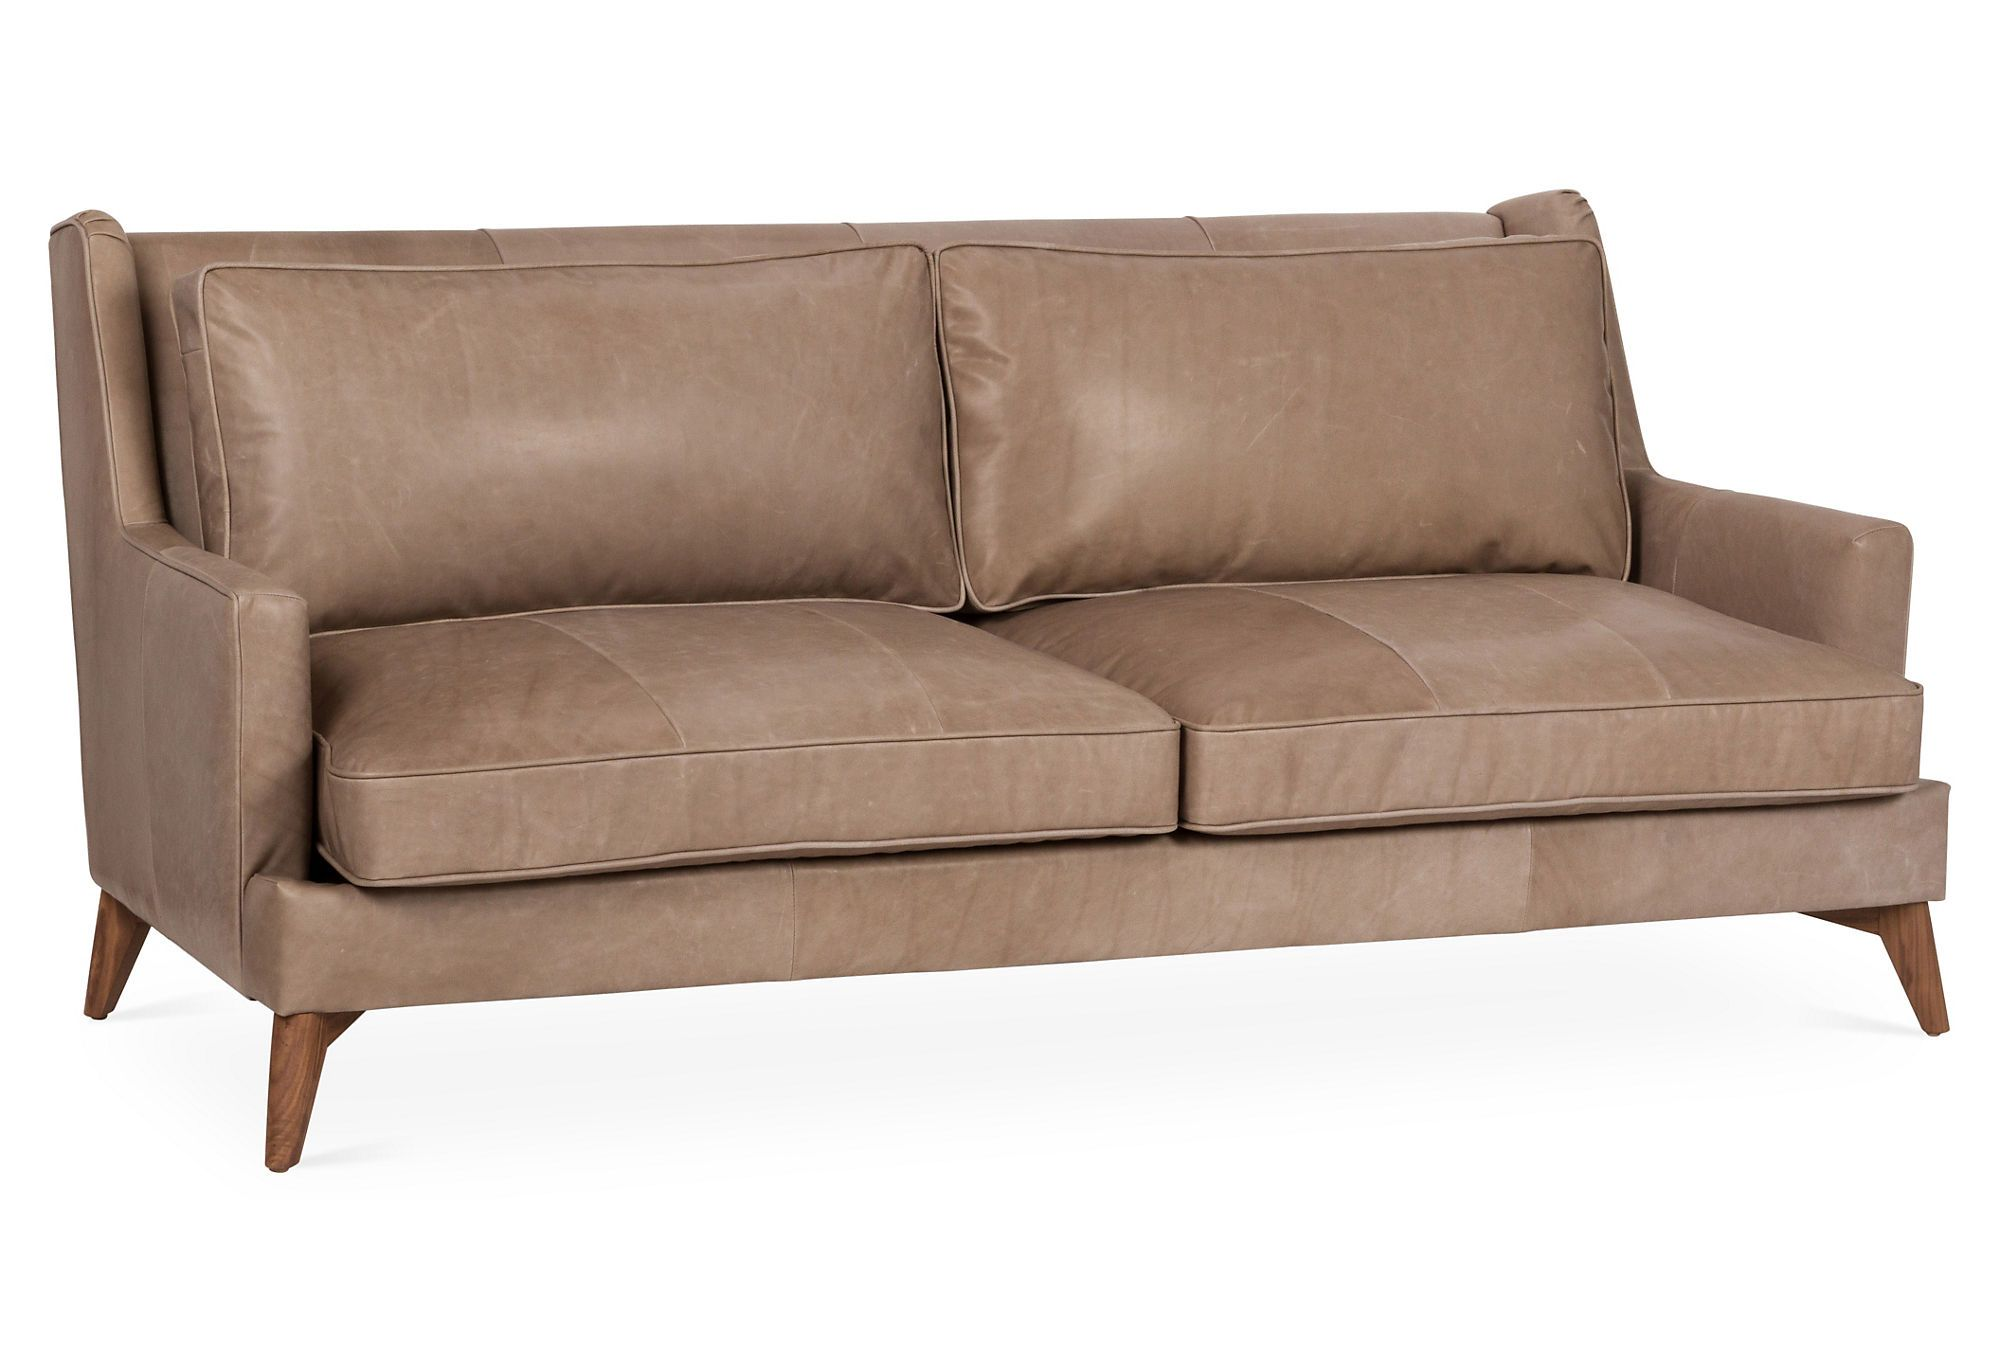 "Beverlywood 83"" Sofa, Pewter Leather 